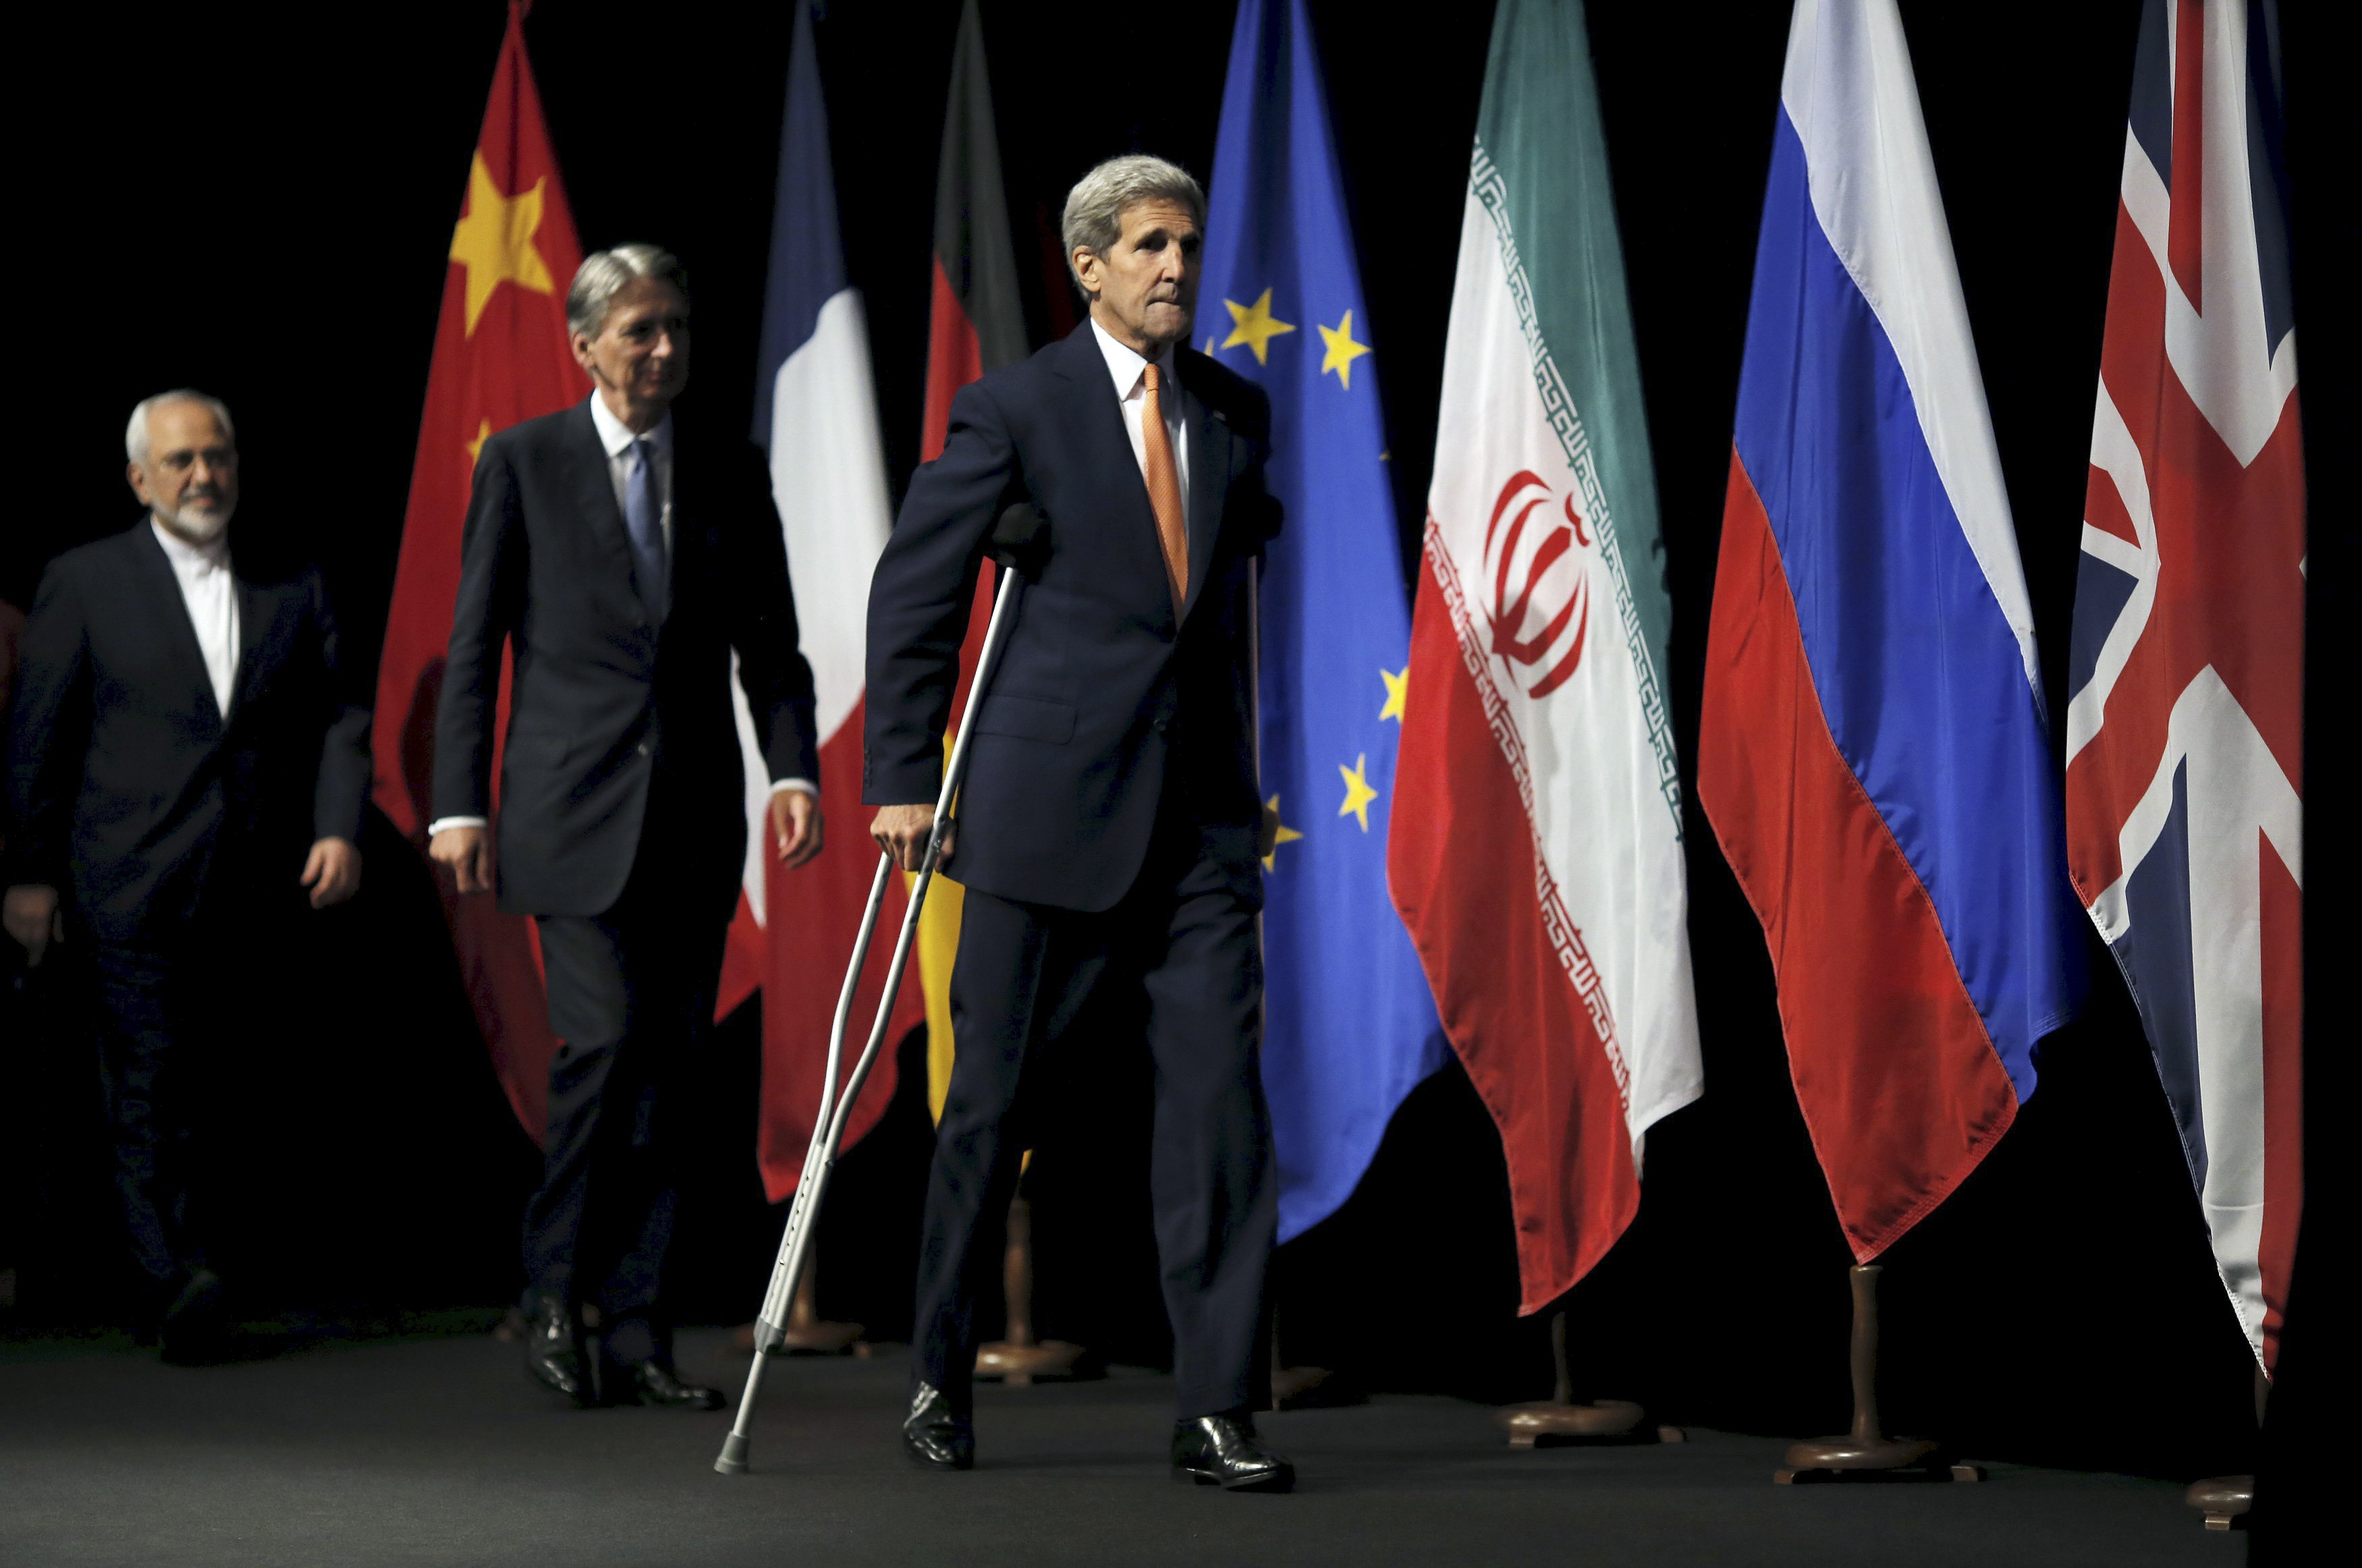 If the agreement negotiated by Secretary of State John Kerry and others does not peacefully block Iran's ability to build nuclear weapons, military options remain available. (New York Times)